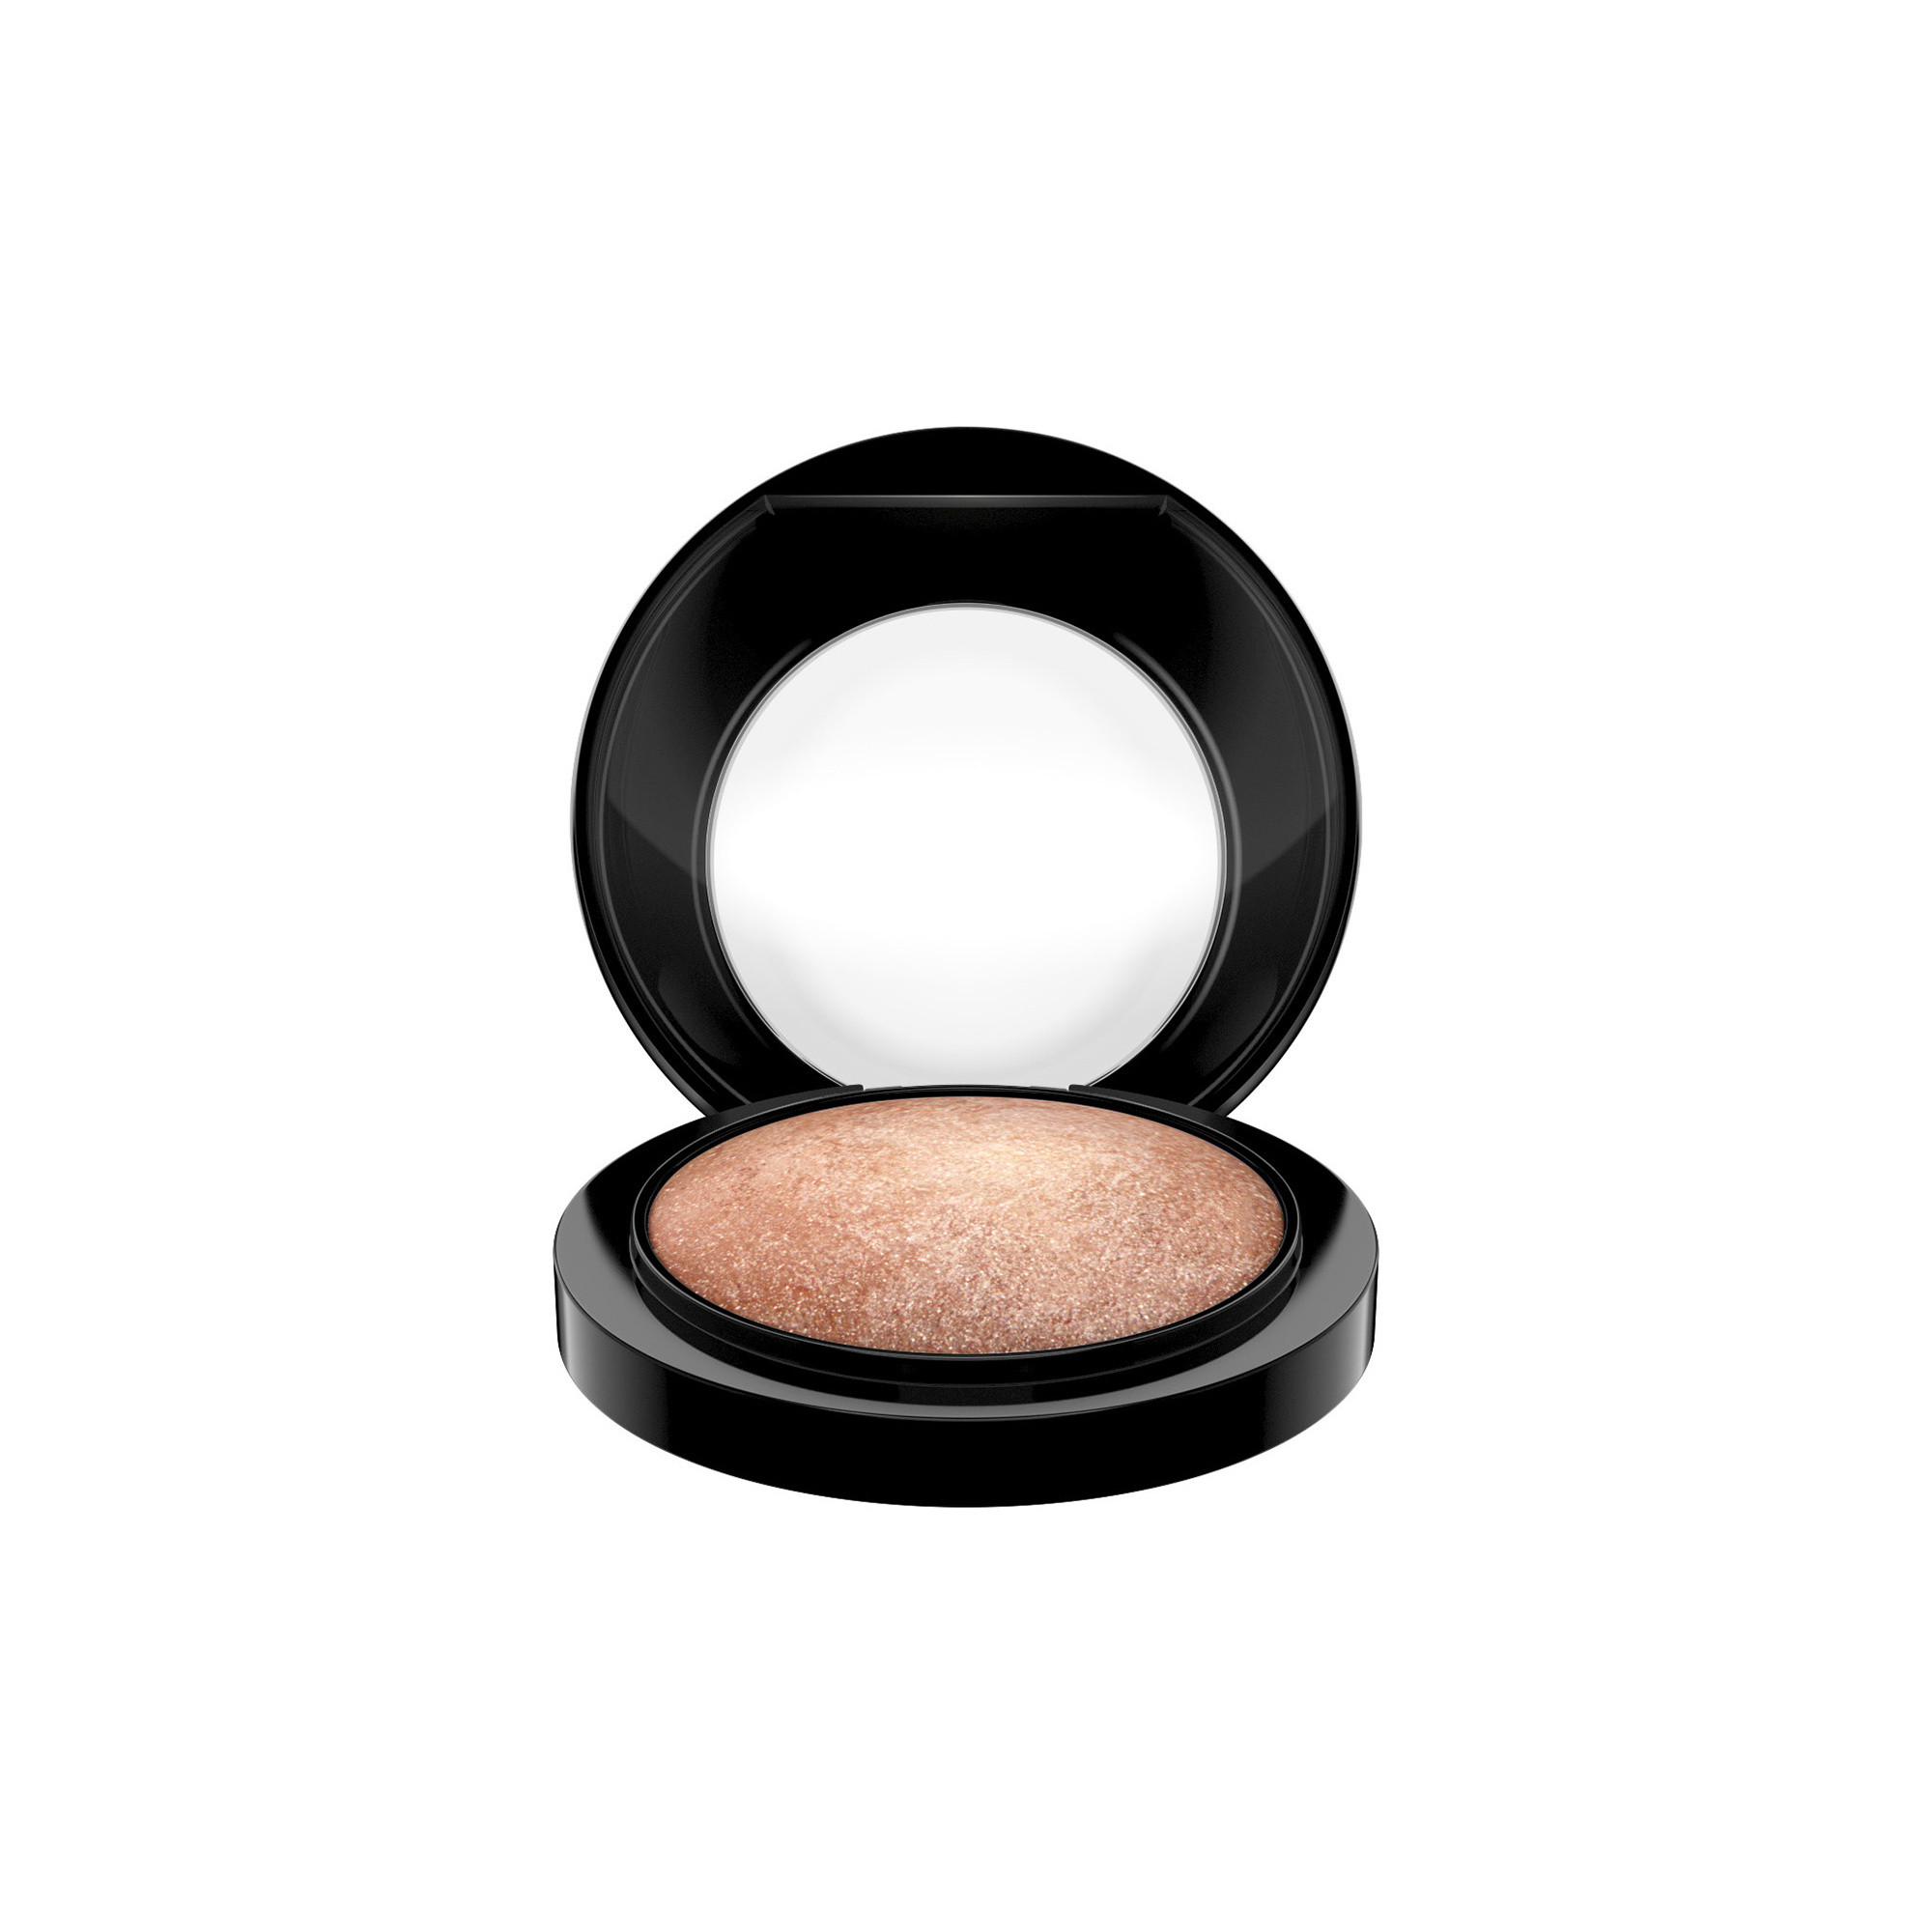 Mineralize Skinfinish - Global Glow, GLOBAL GLOW, large image number 0